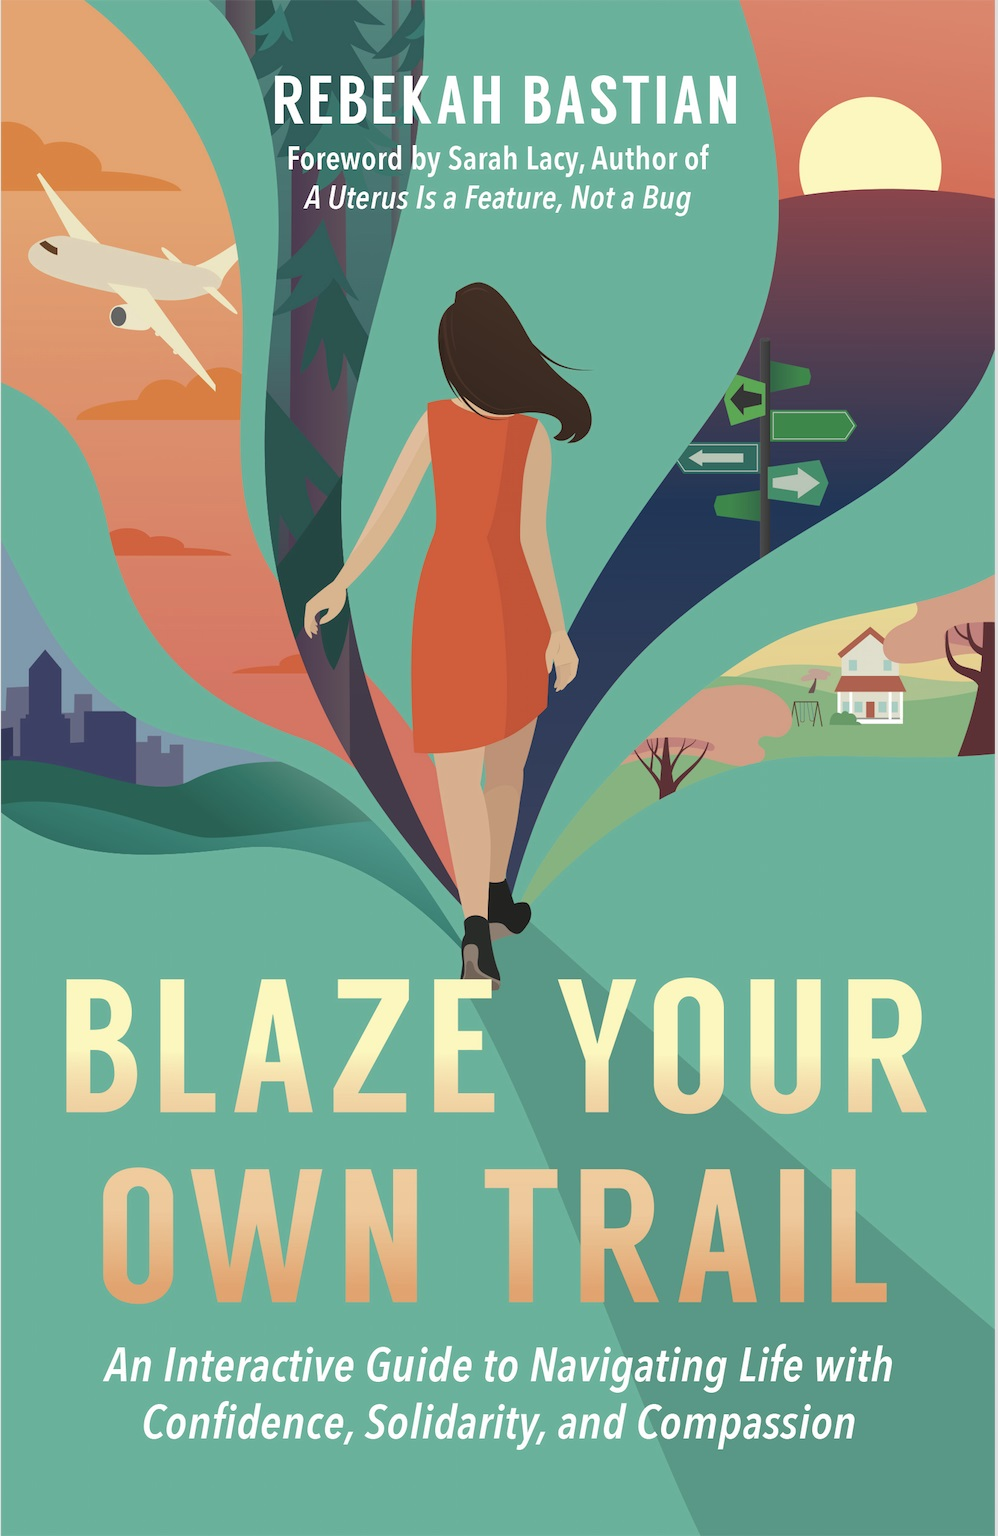 Rebekah Bastian's Blaze Your Own Trail: An Interactive Guide to Navigating Life with Confidence, Solidarity, and Compassion